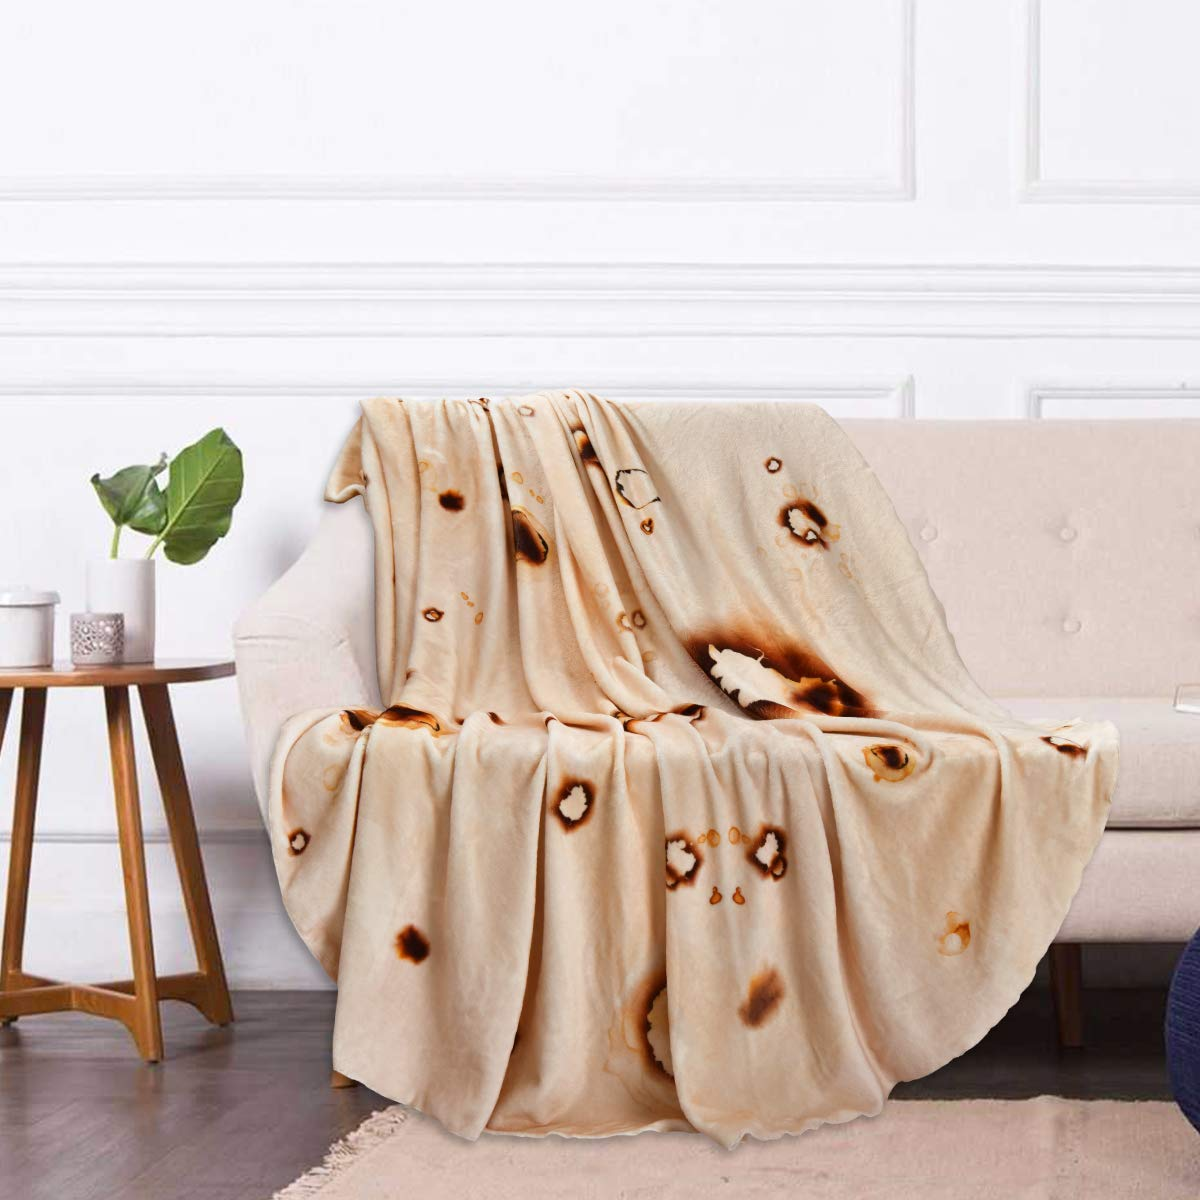 Yastouay Burritos Tortilla Blanket 71 Inches Diameter Round Burritos Throw Blanket Soft Flannel Wearable Blanket for Indoors and Outdoors